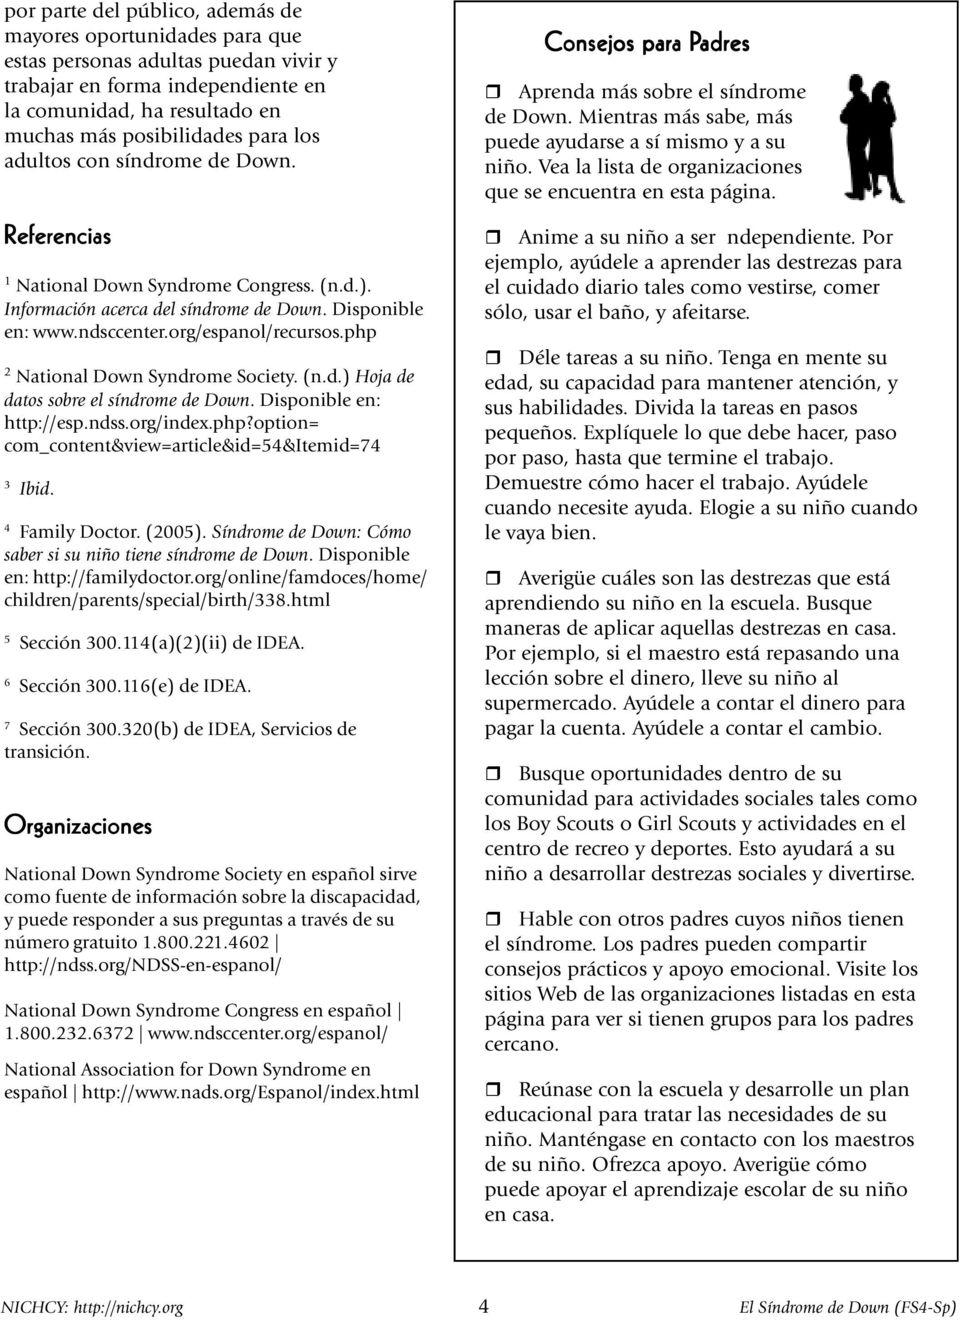 php 2 National Down Syndrome Society. (n.d.) Hoja de datos sobre el síndrome de Down. Disponible en: http://esp.ndss.org/index.php?option= com_content&view=article&id=54&itemid=74 3 Ibid.